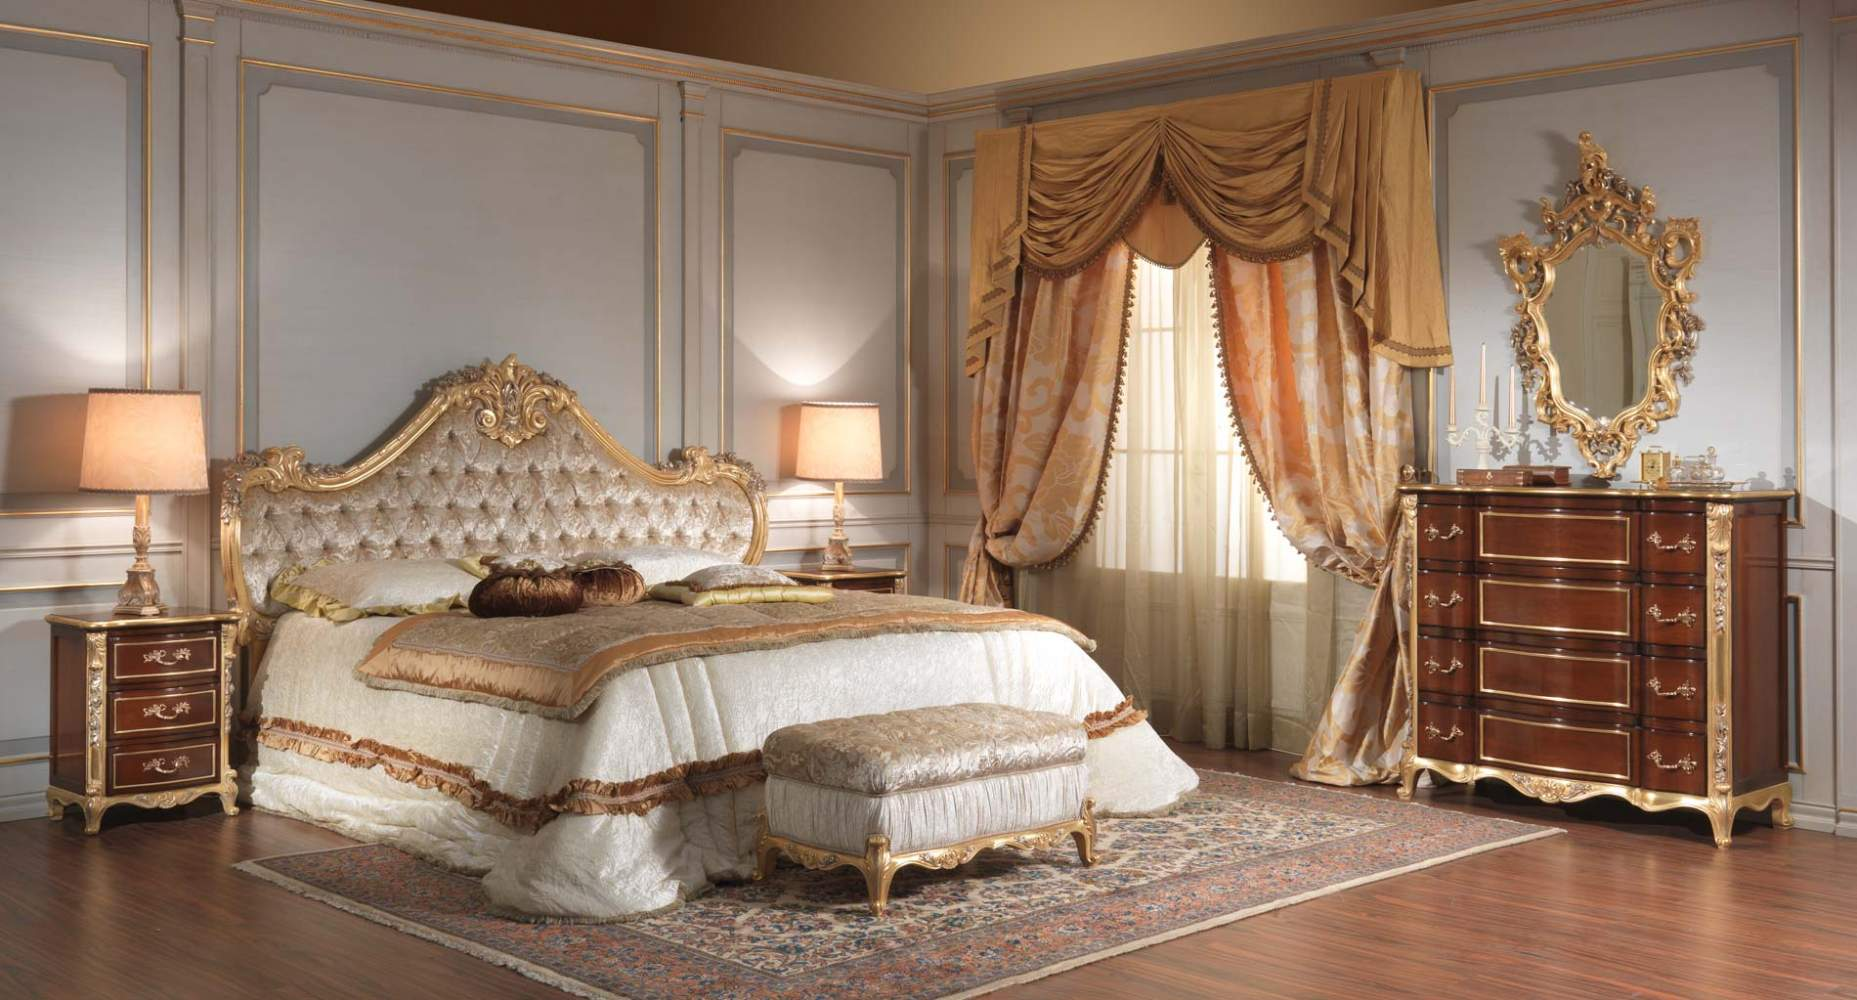 Classic italian 18th century bedroom vimercati classic Century bedroom furniture